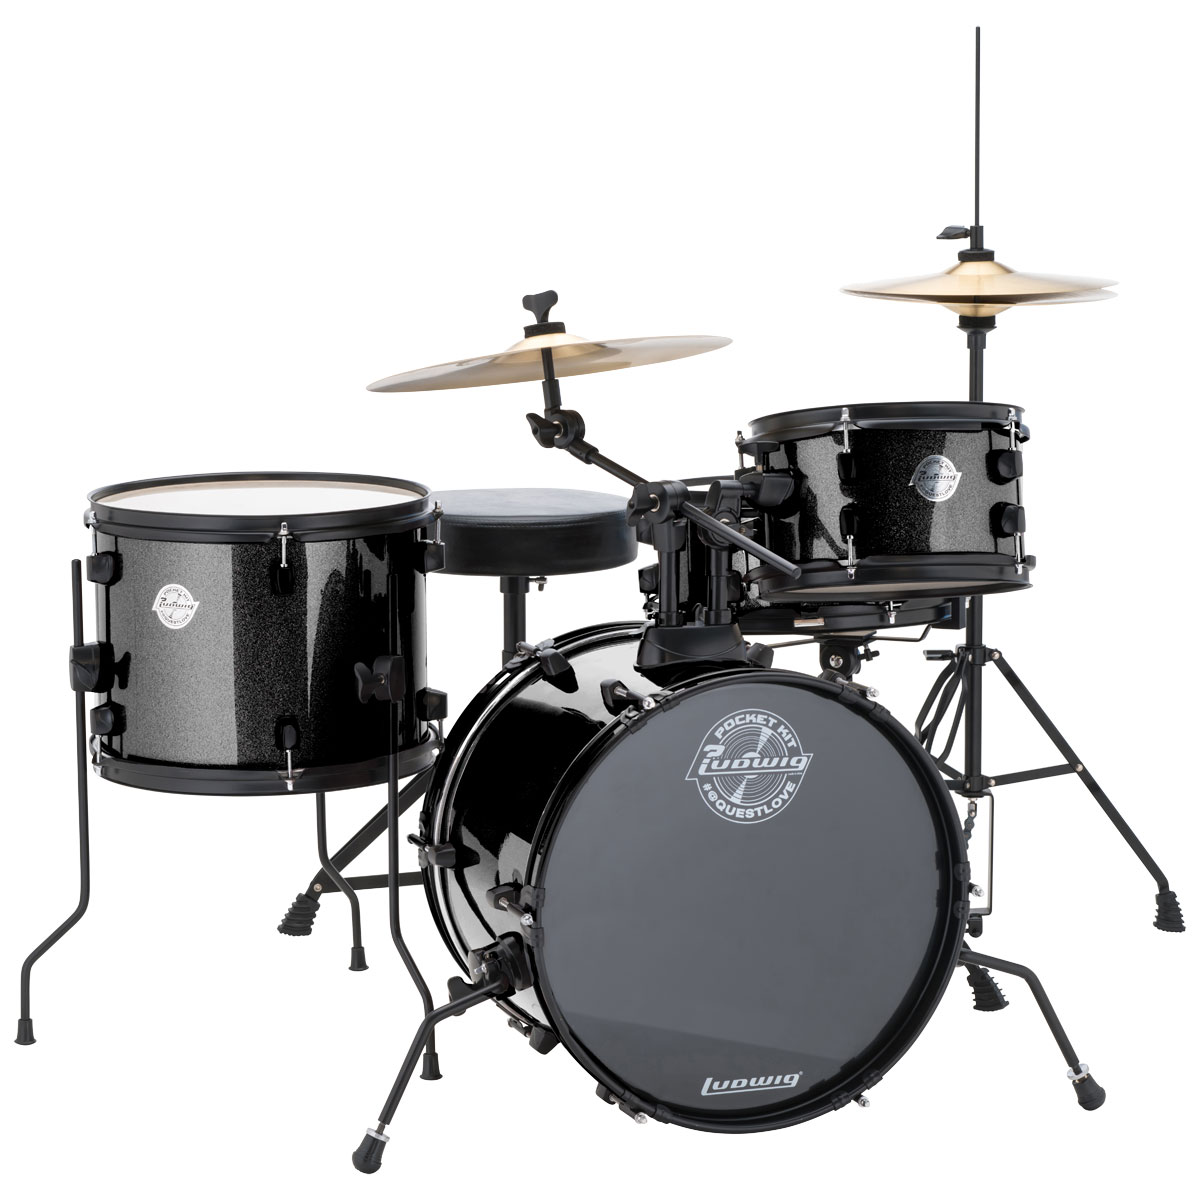 ludwig pocket kit 4 piece drum set w hardware cymbals 16 bass 10 13 toms 12 snare lc178x0. Black Bedroom Furniture Sets. Home Design Ideas